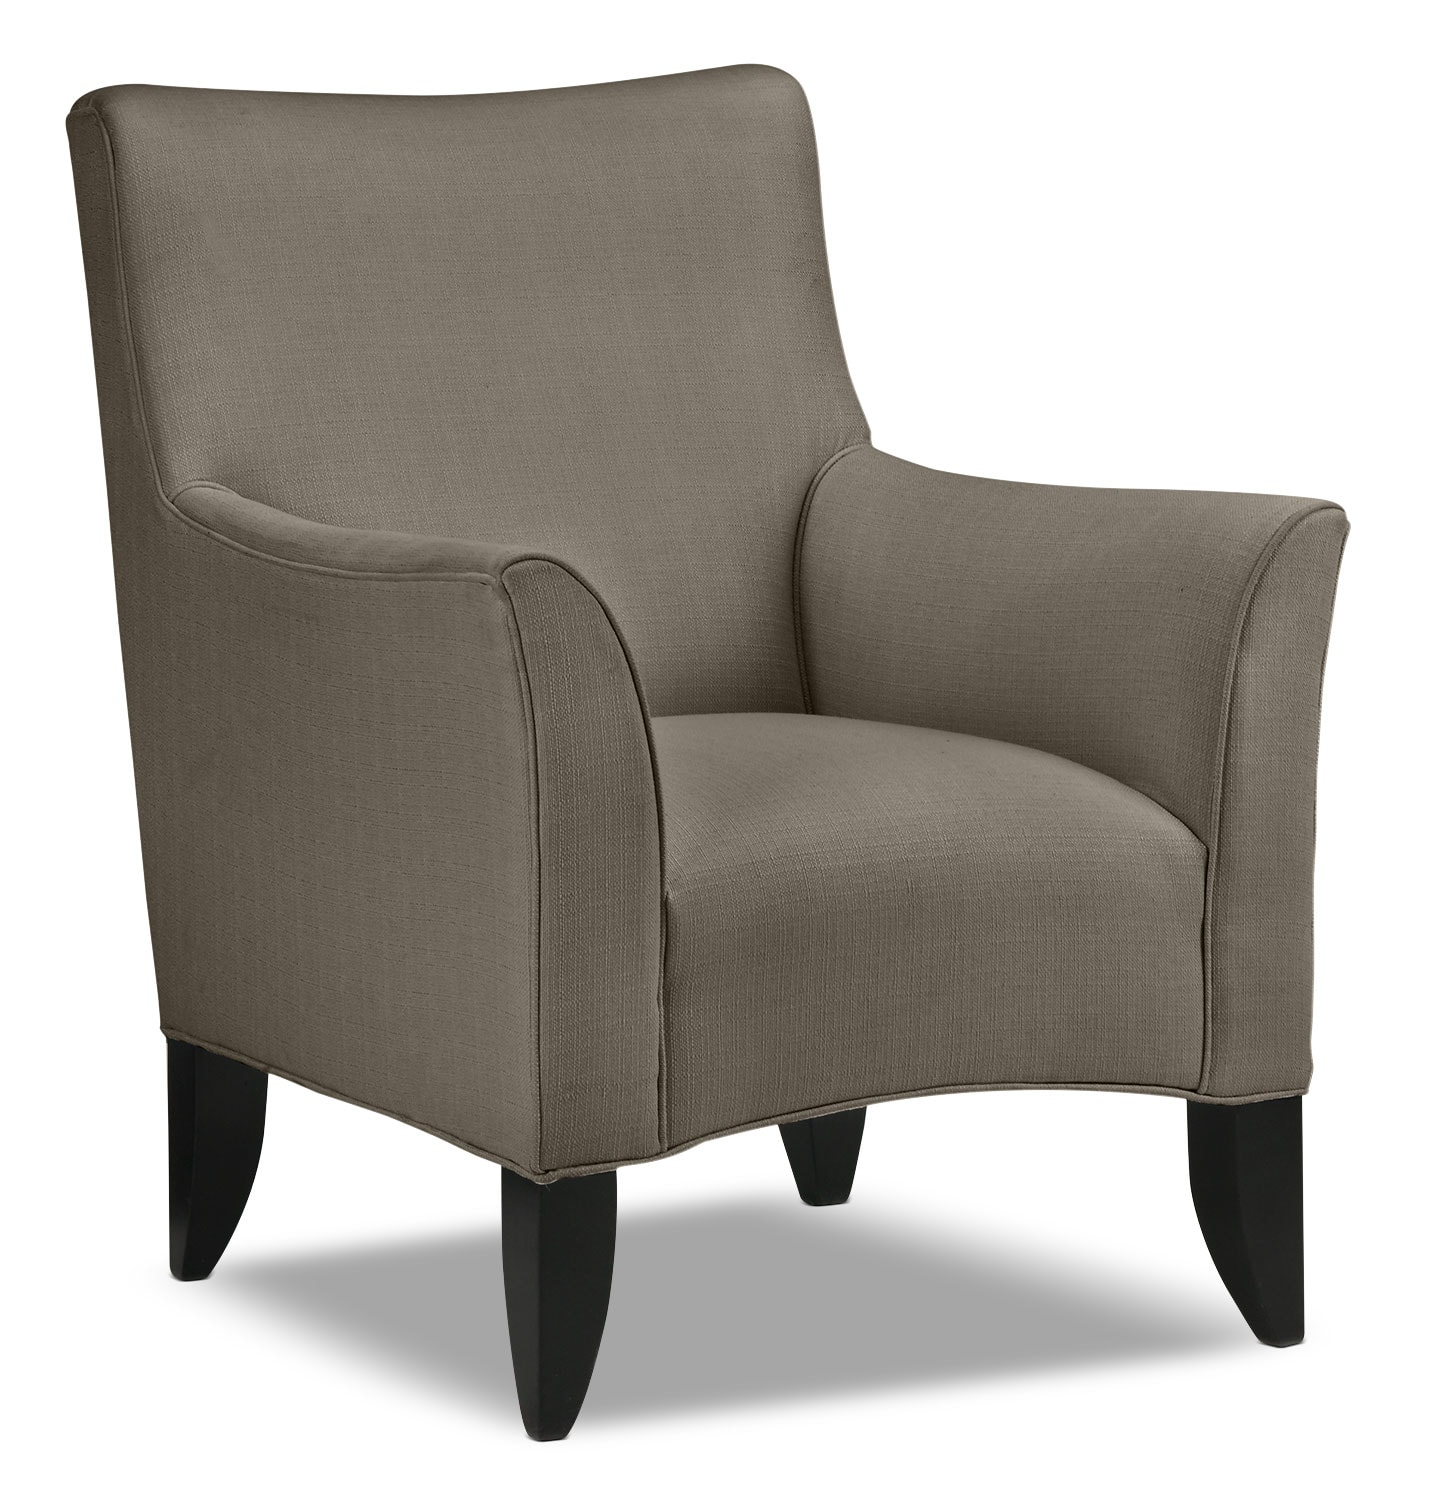 klein accent chair grey leon 39 s. Black Bedroom Furniture Sets. Home Design Ideas